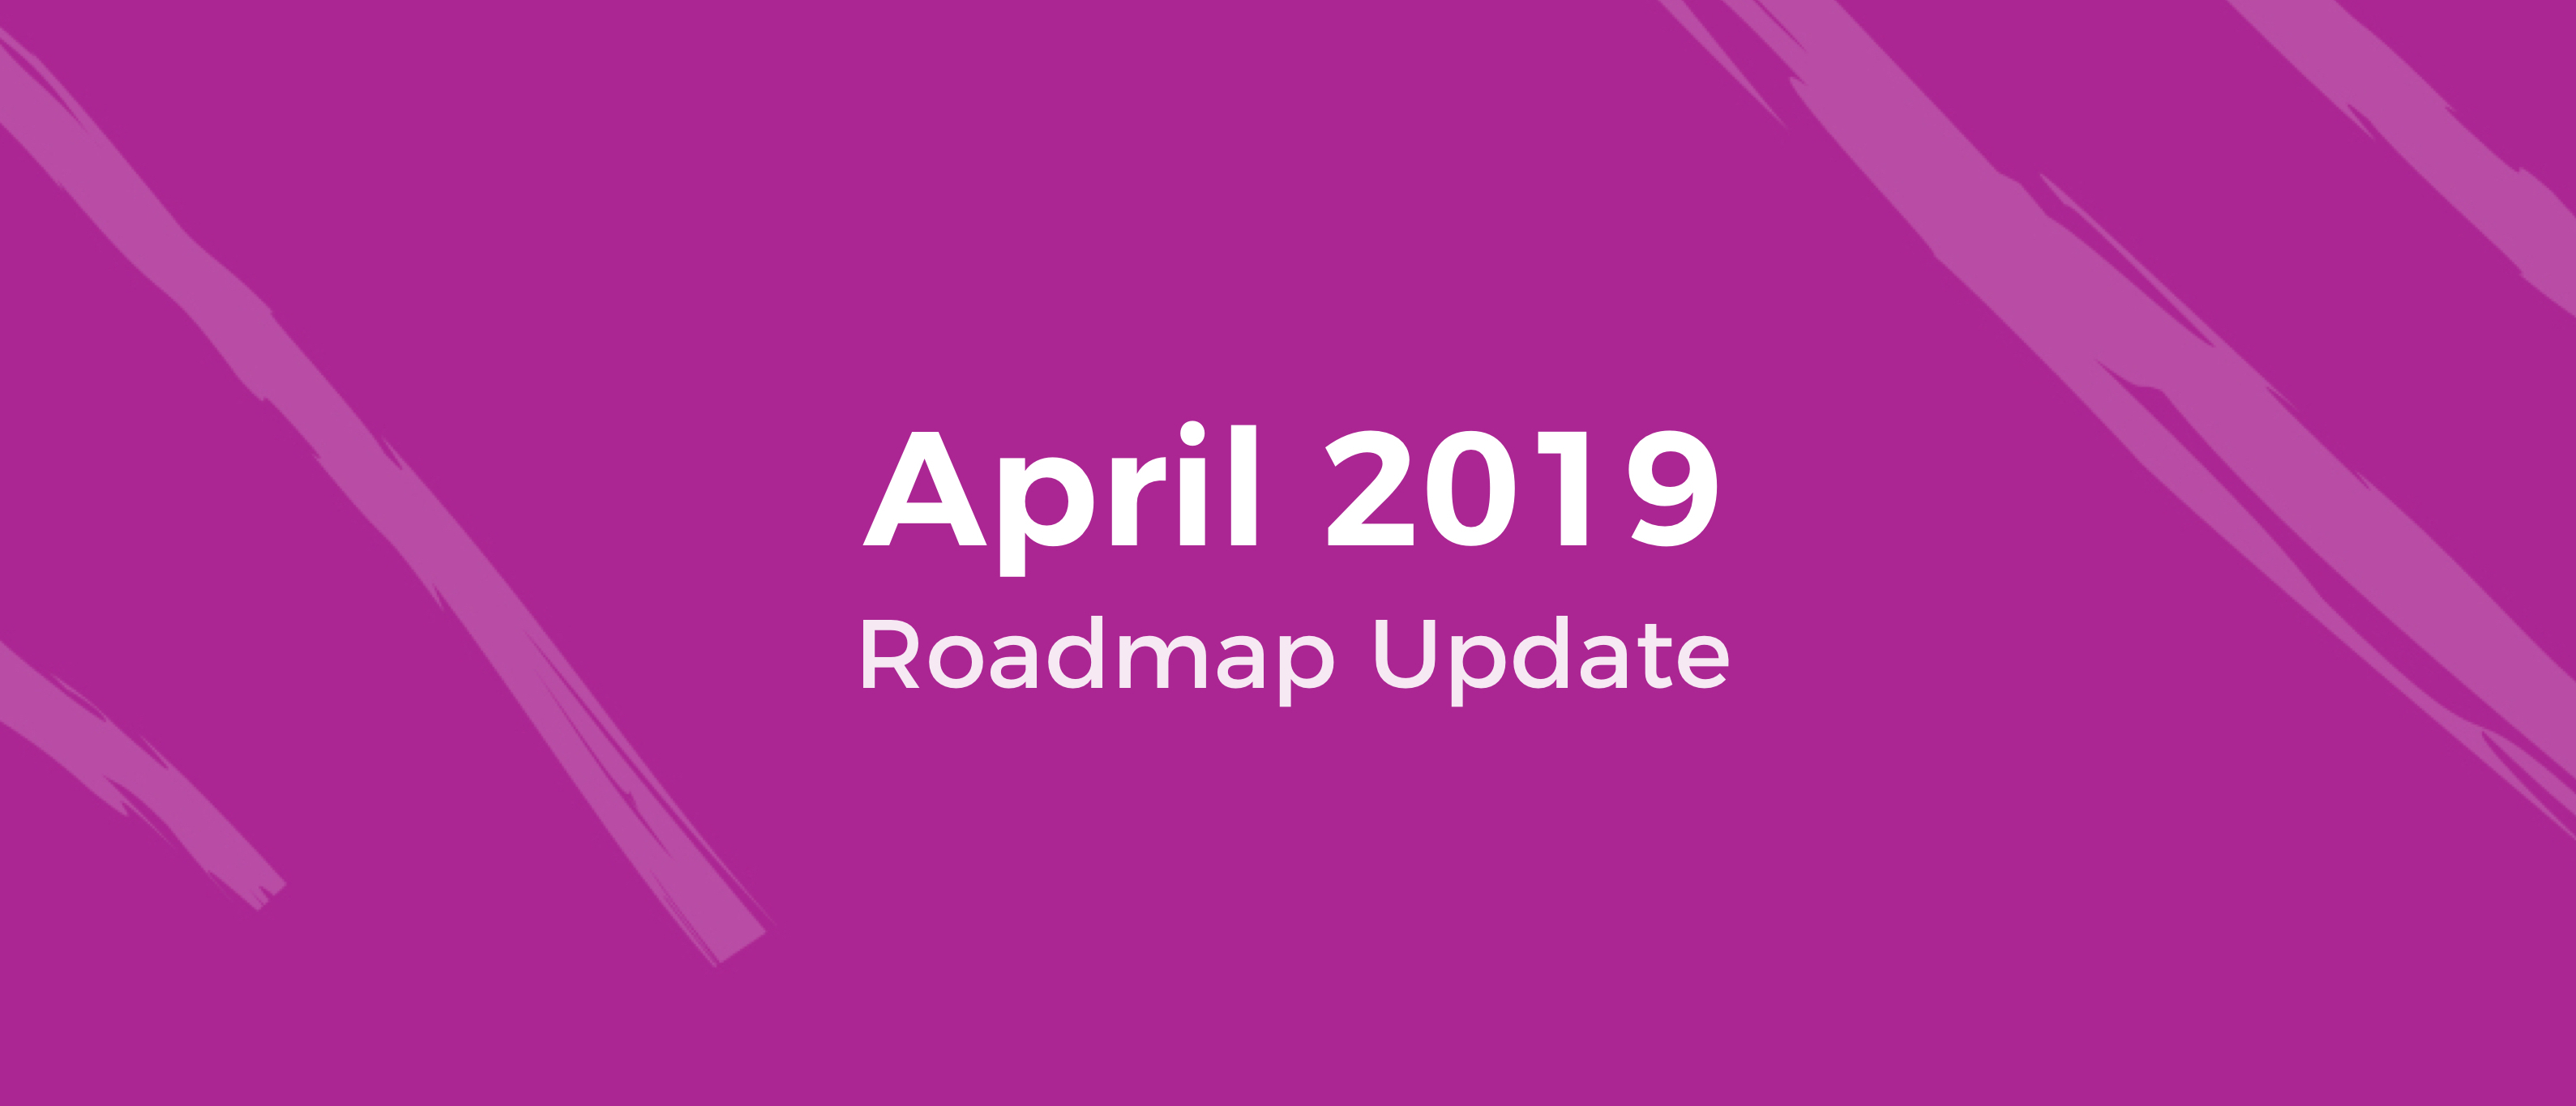 Roadmap Update April 2019